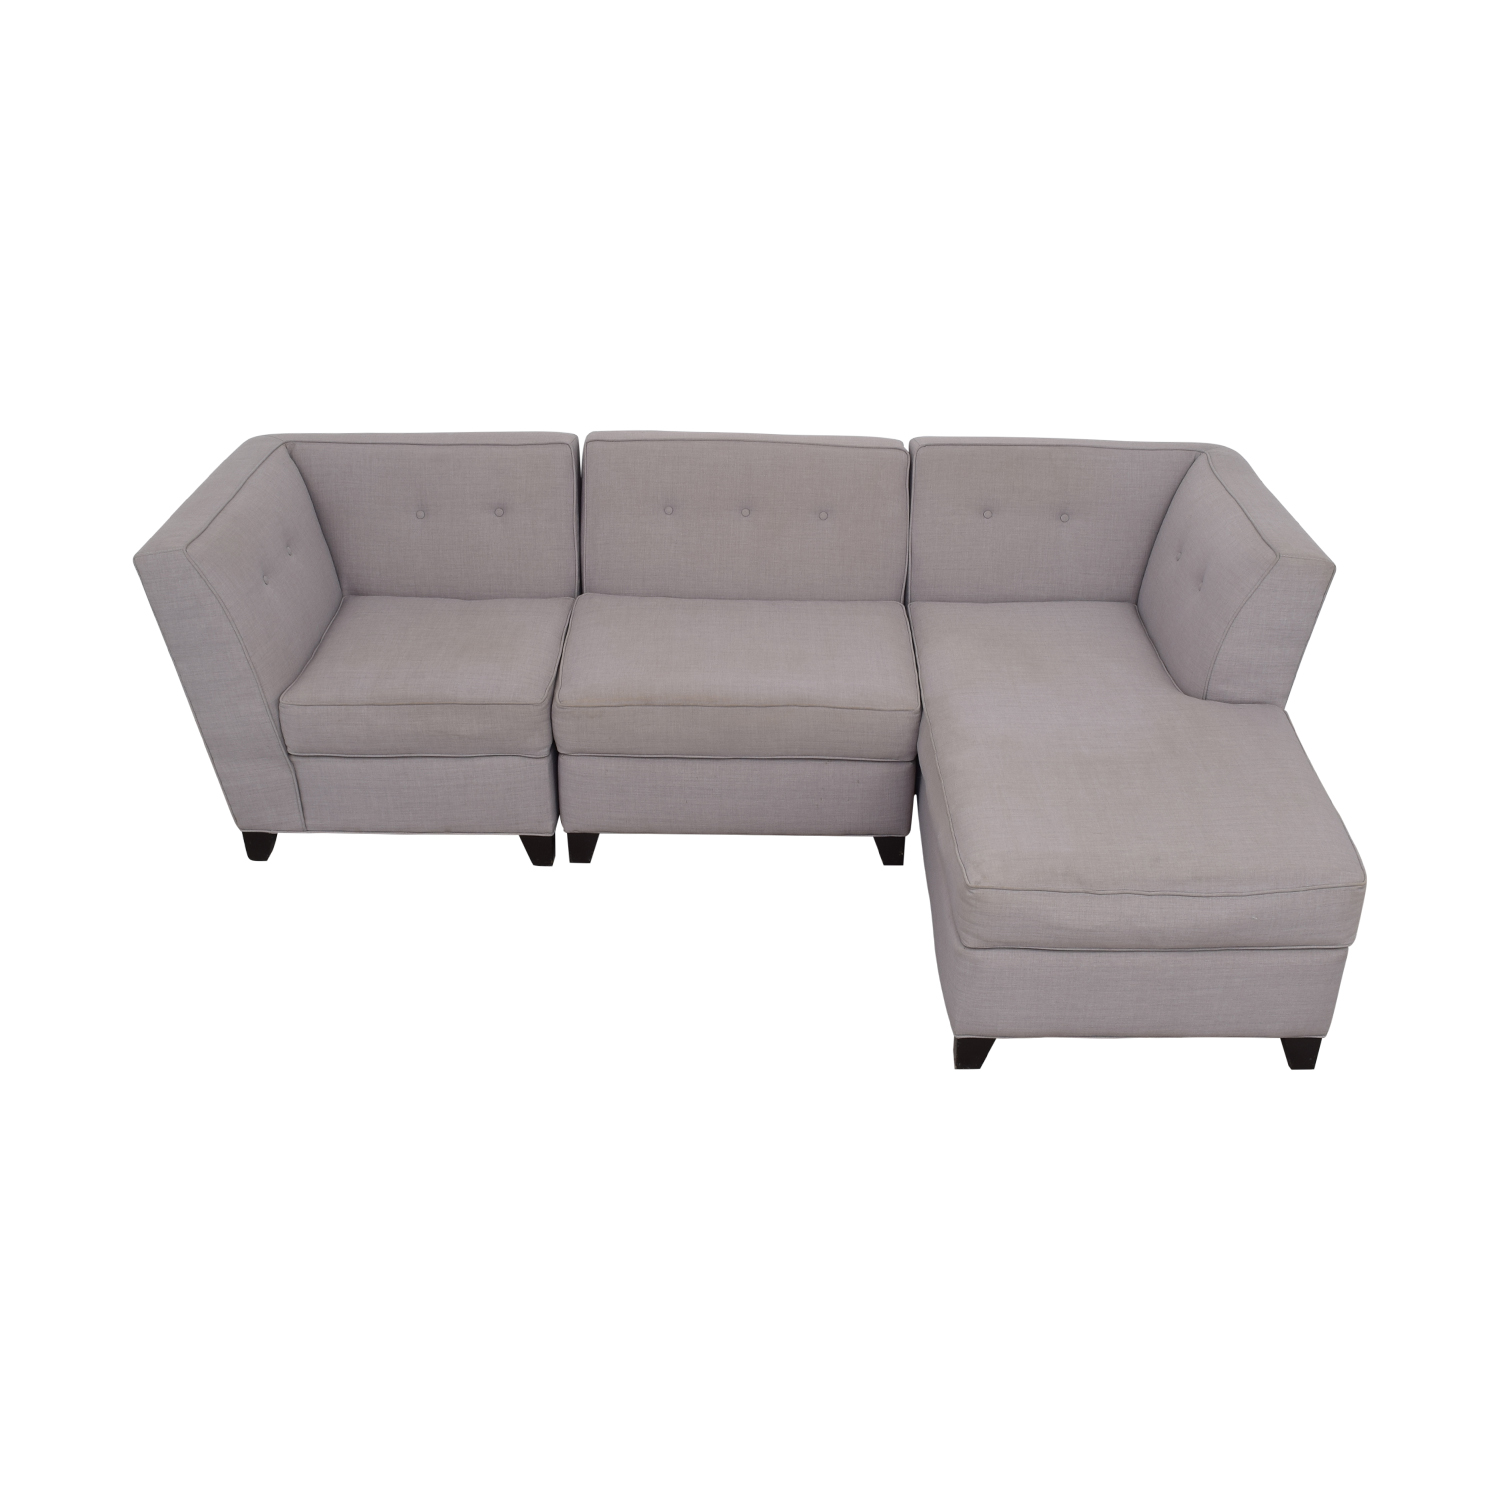 shop Macy's Three Piece Sectional Sofa Macy's Sectionals